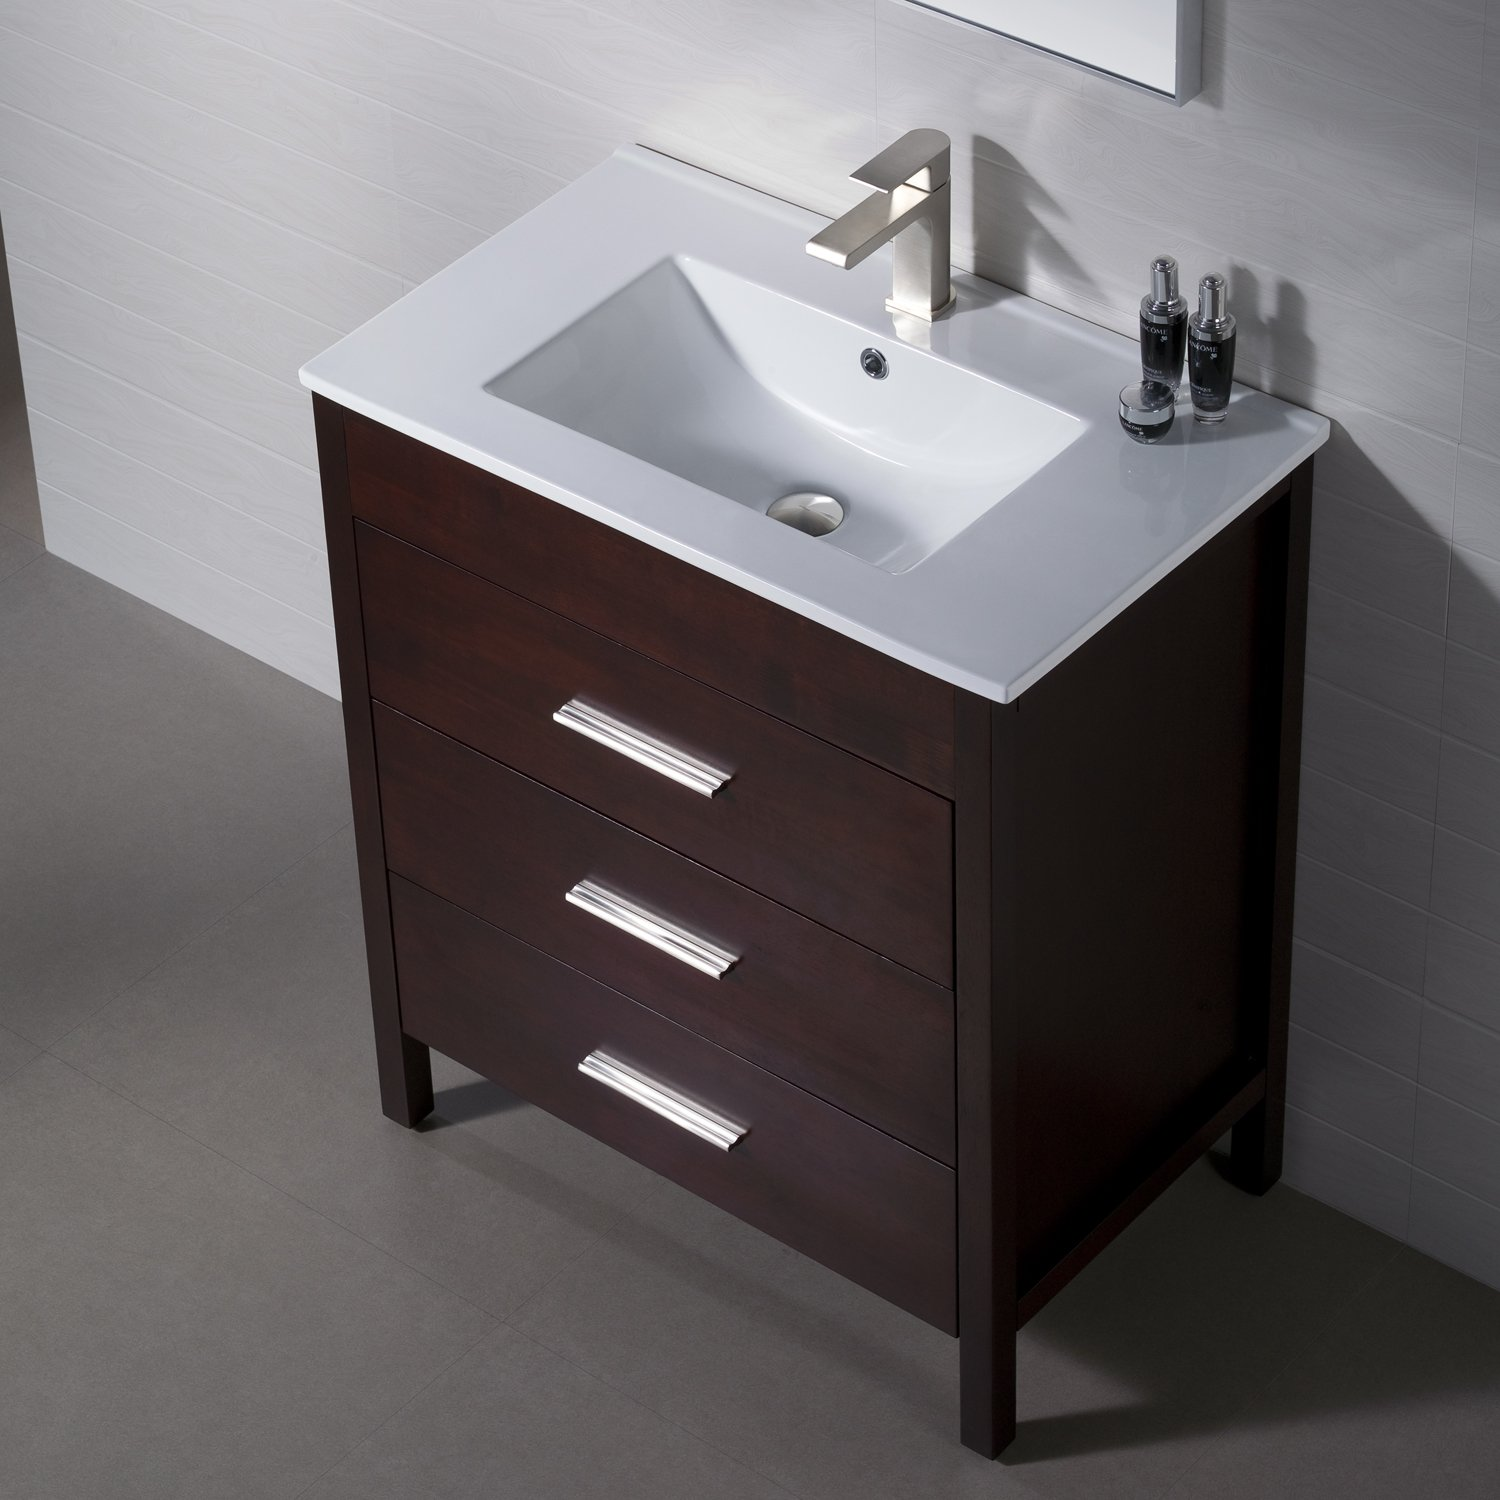 amazoncom bathroom vanity morris 30 dark walnut with porcelain sink top kitchen u0026 dining